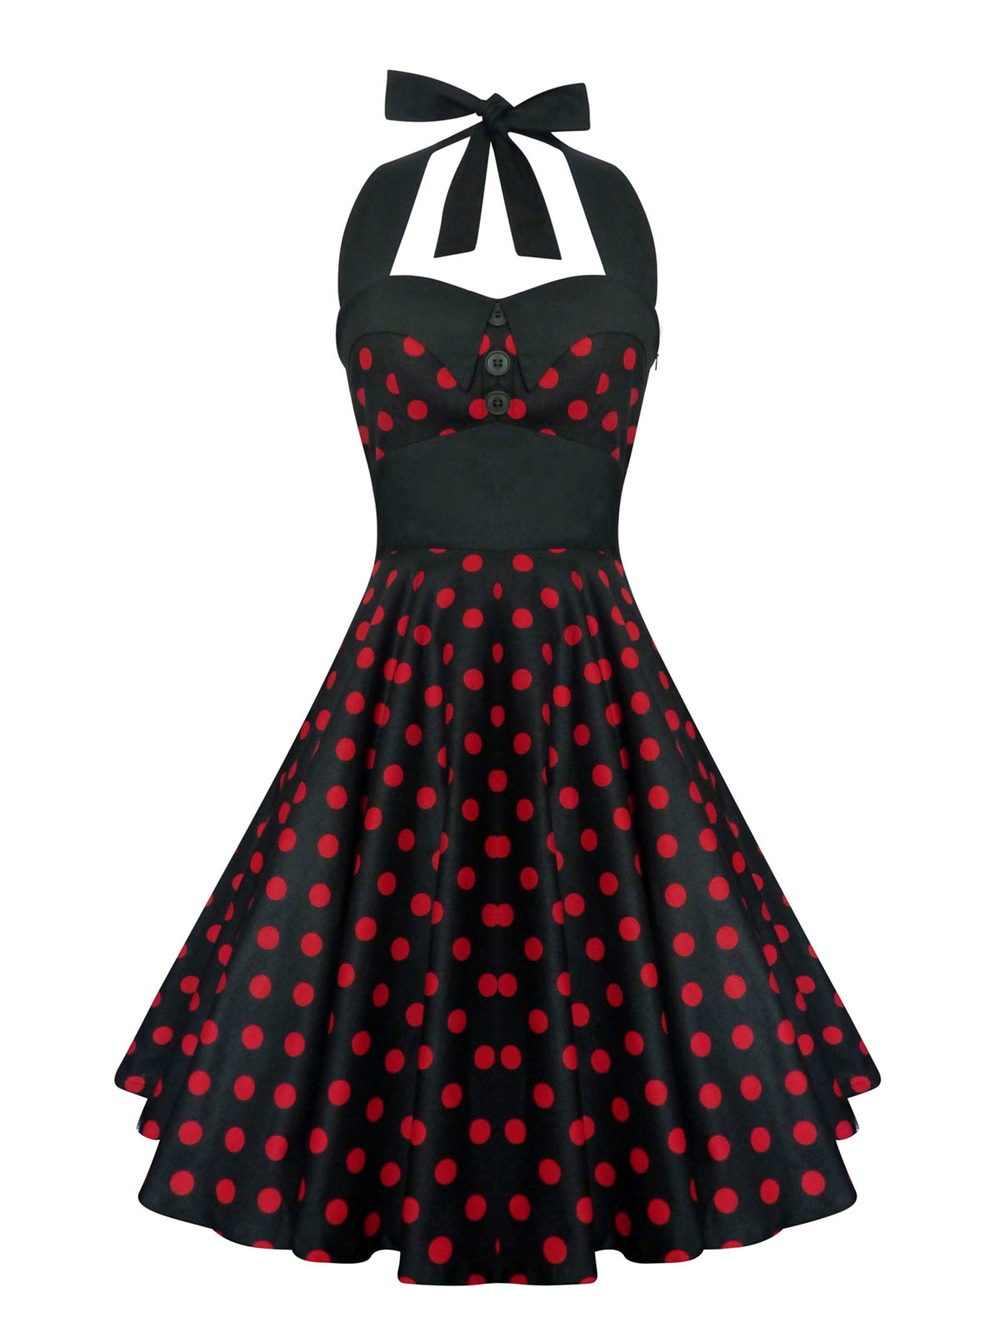 sassy 1950s red and black polka dotted dress